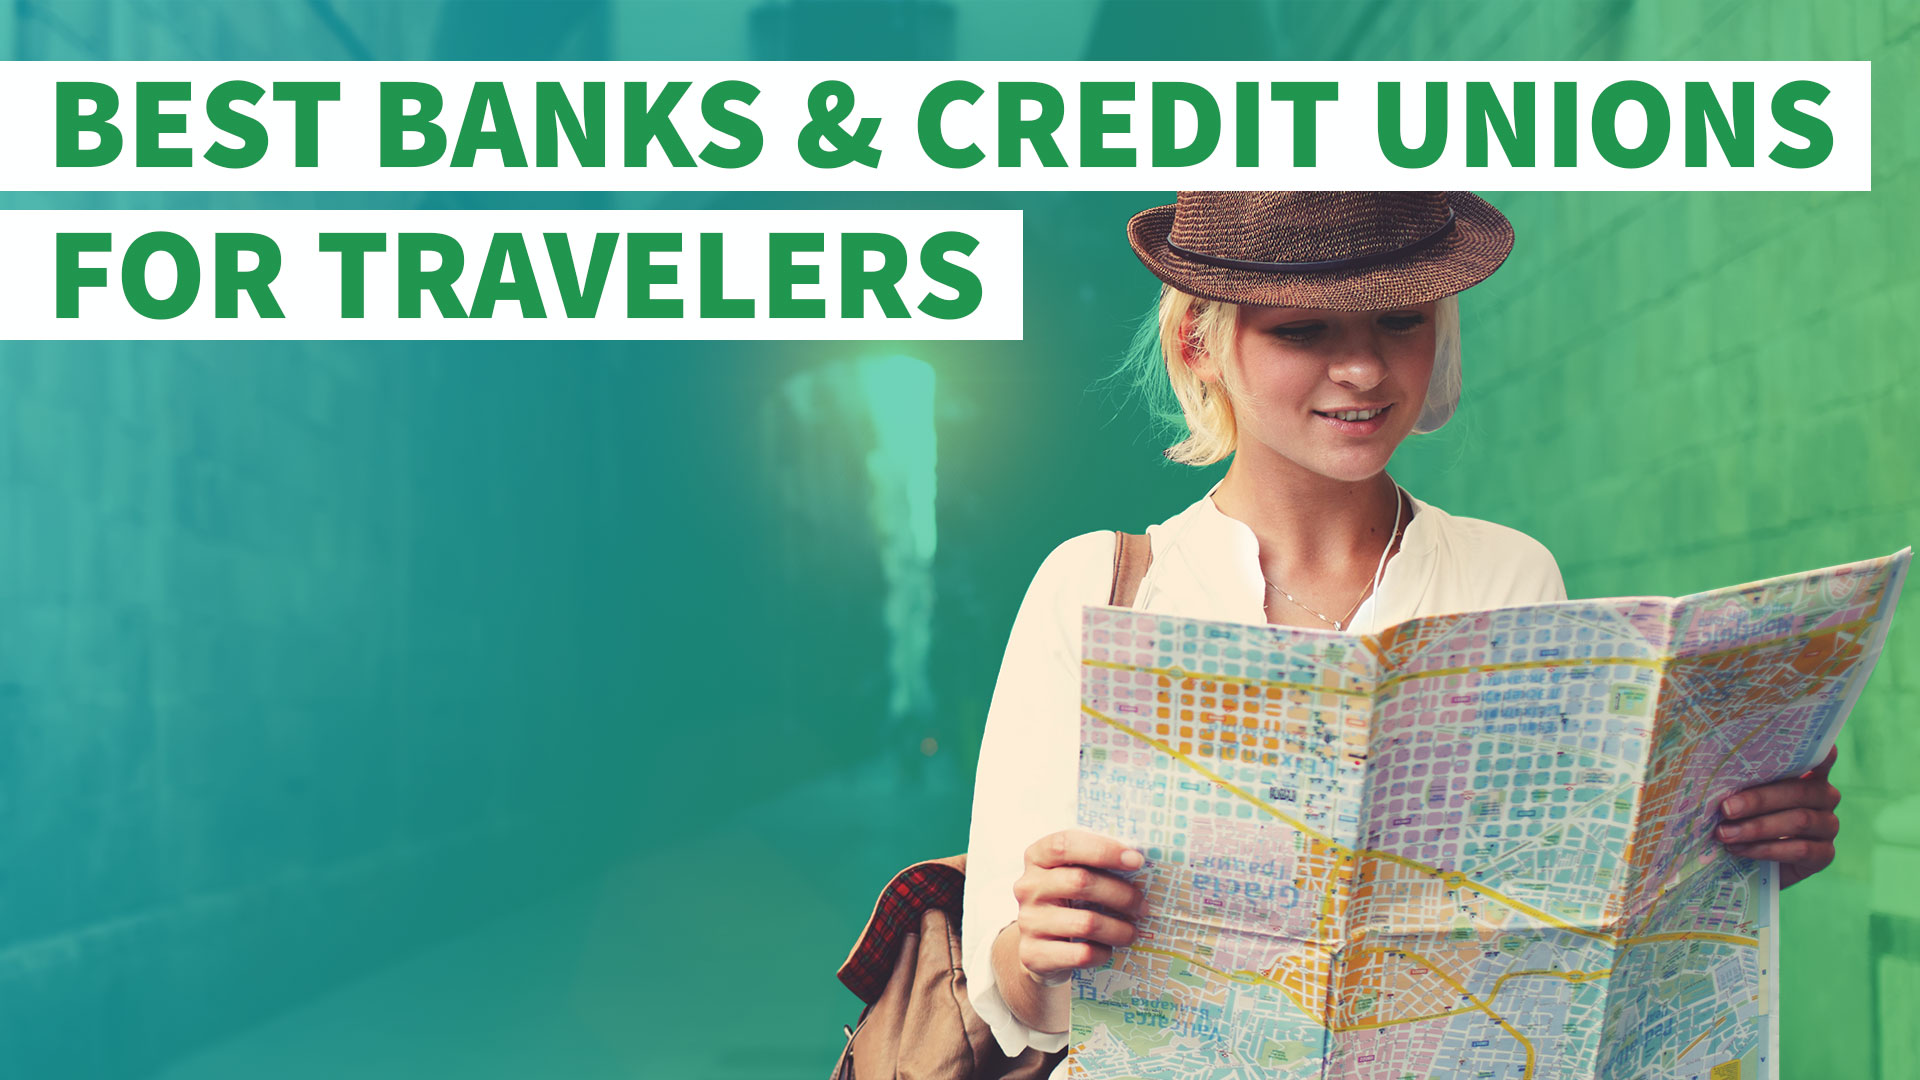 10 Best Banks and Credit Unions for Travelers | GOBankingRates